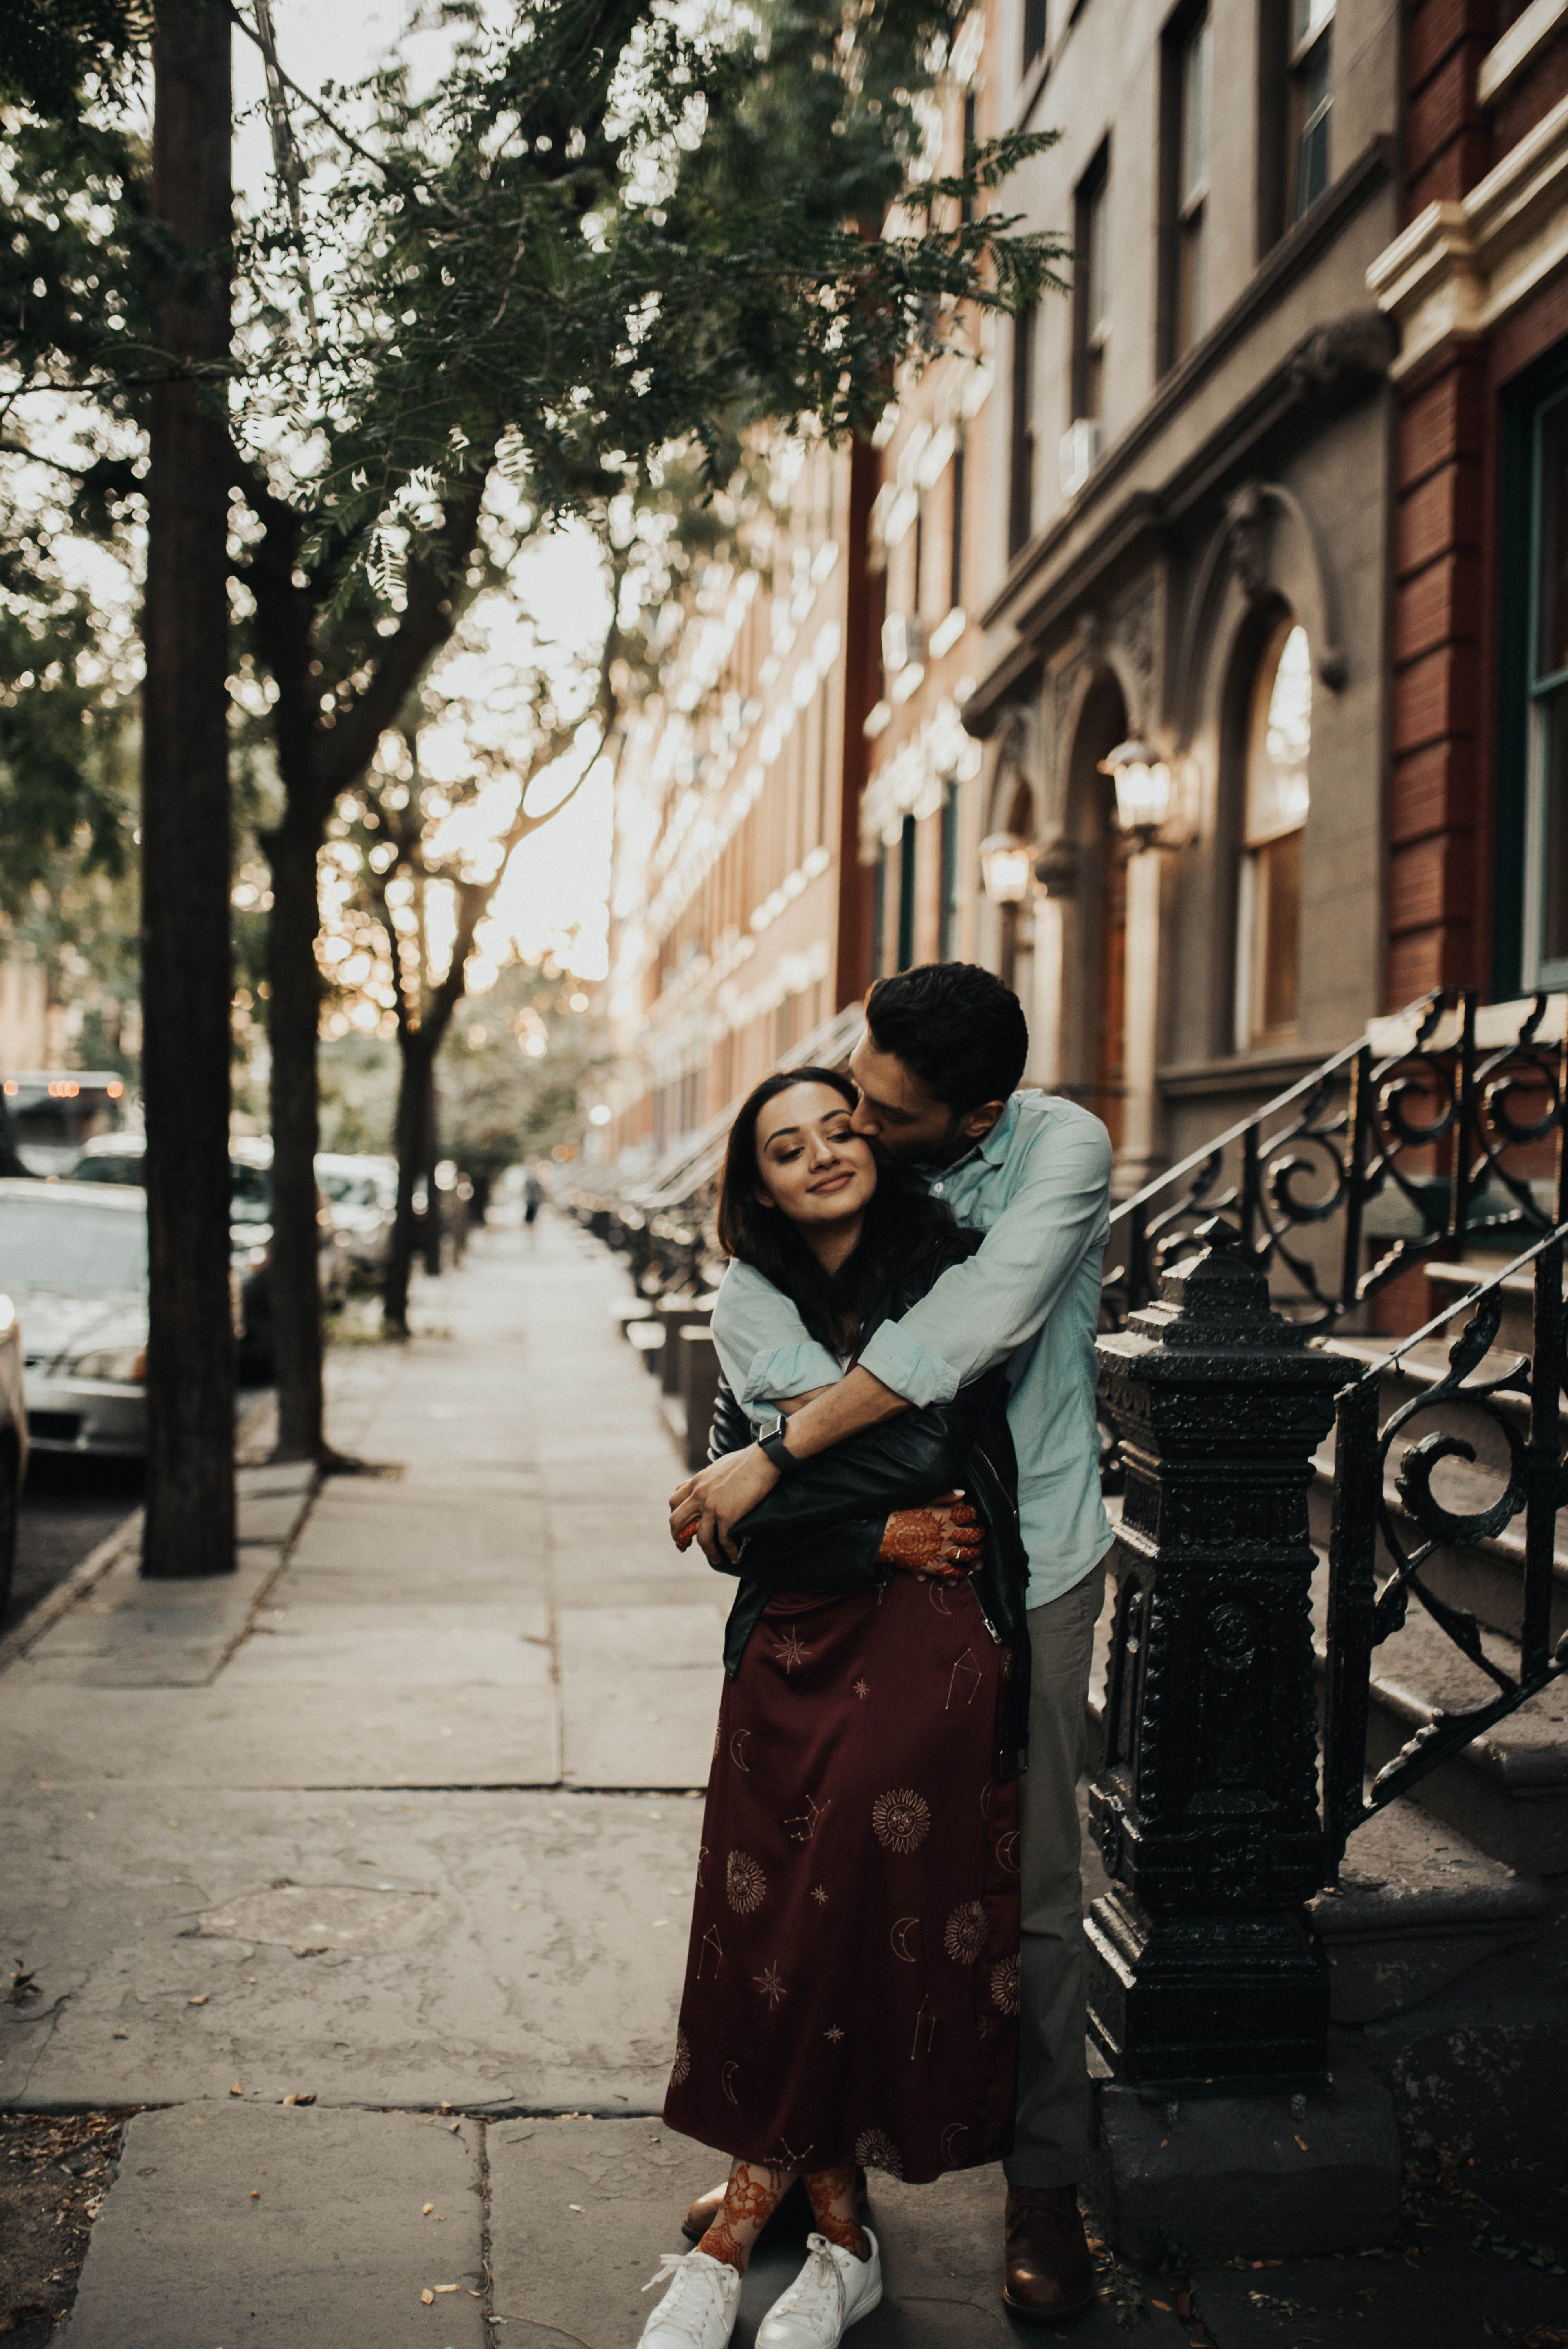 Mahtab Abdul Shot These Two Romantic And Moody Lovers The Day Before Their New Yo Wedding Couple Poses Photography City Engagement Photos Couple Photography